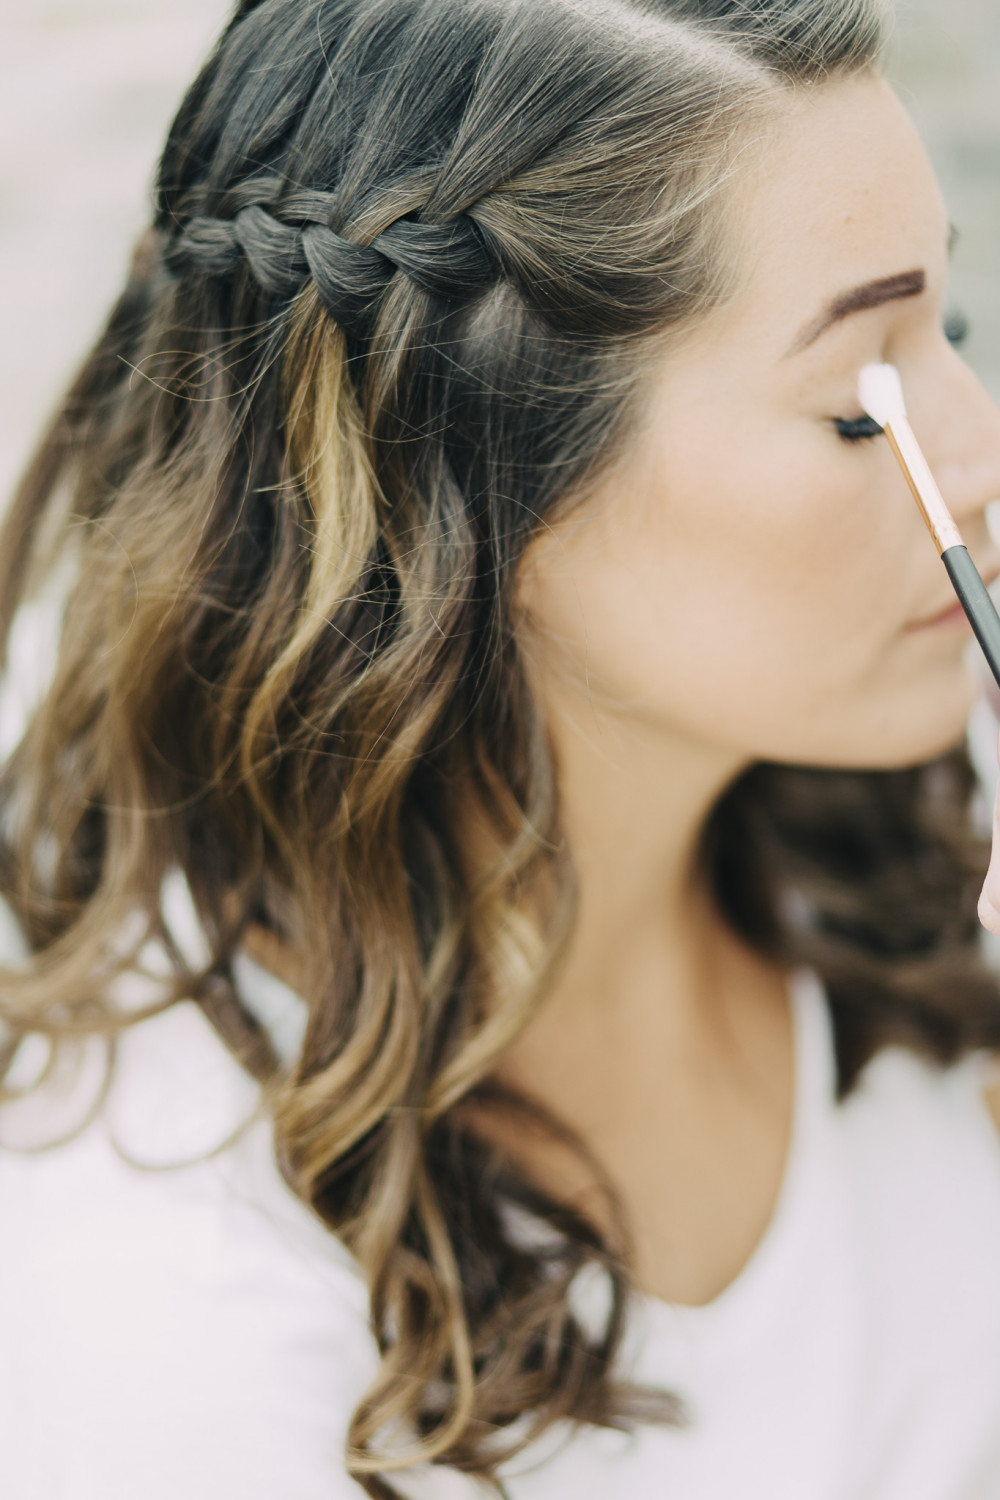 Waterfall braid hair by Victoria - Make Me Bridal Artist: Swaffields Lilliput hair salon . Photography by: Liza Edgington. #boho #halfuphair #curls #gypsophila #gettingready #soft